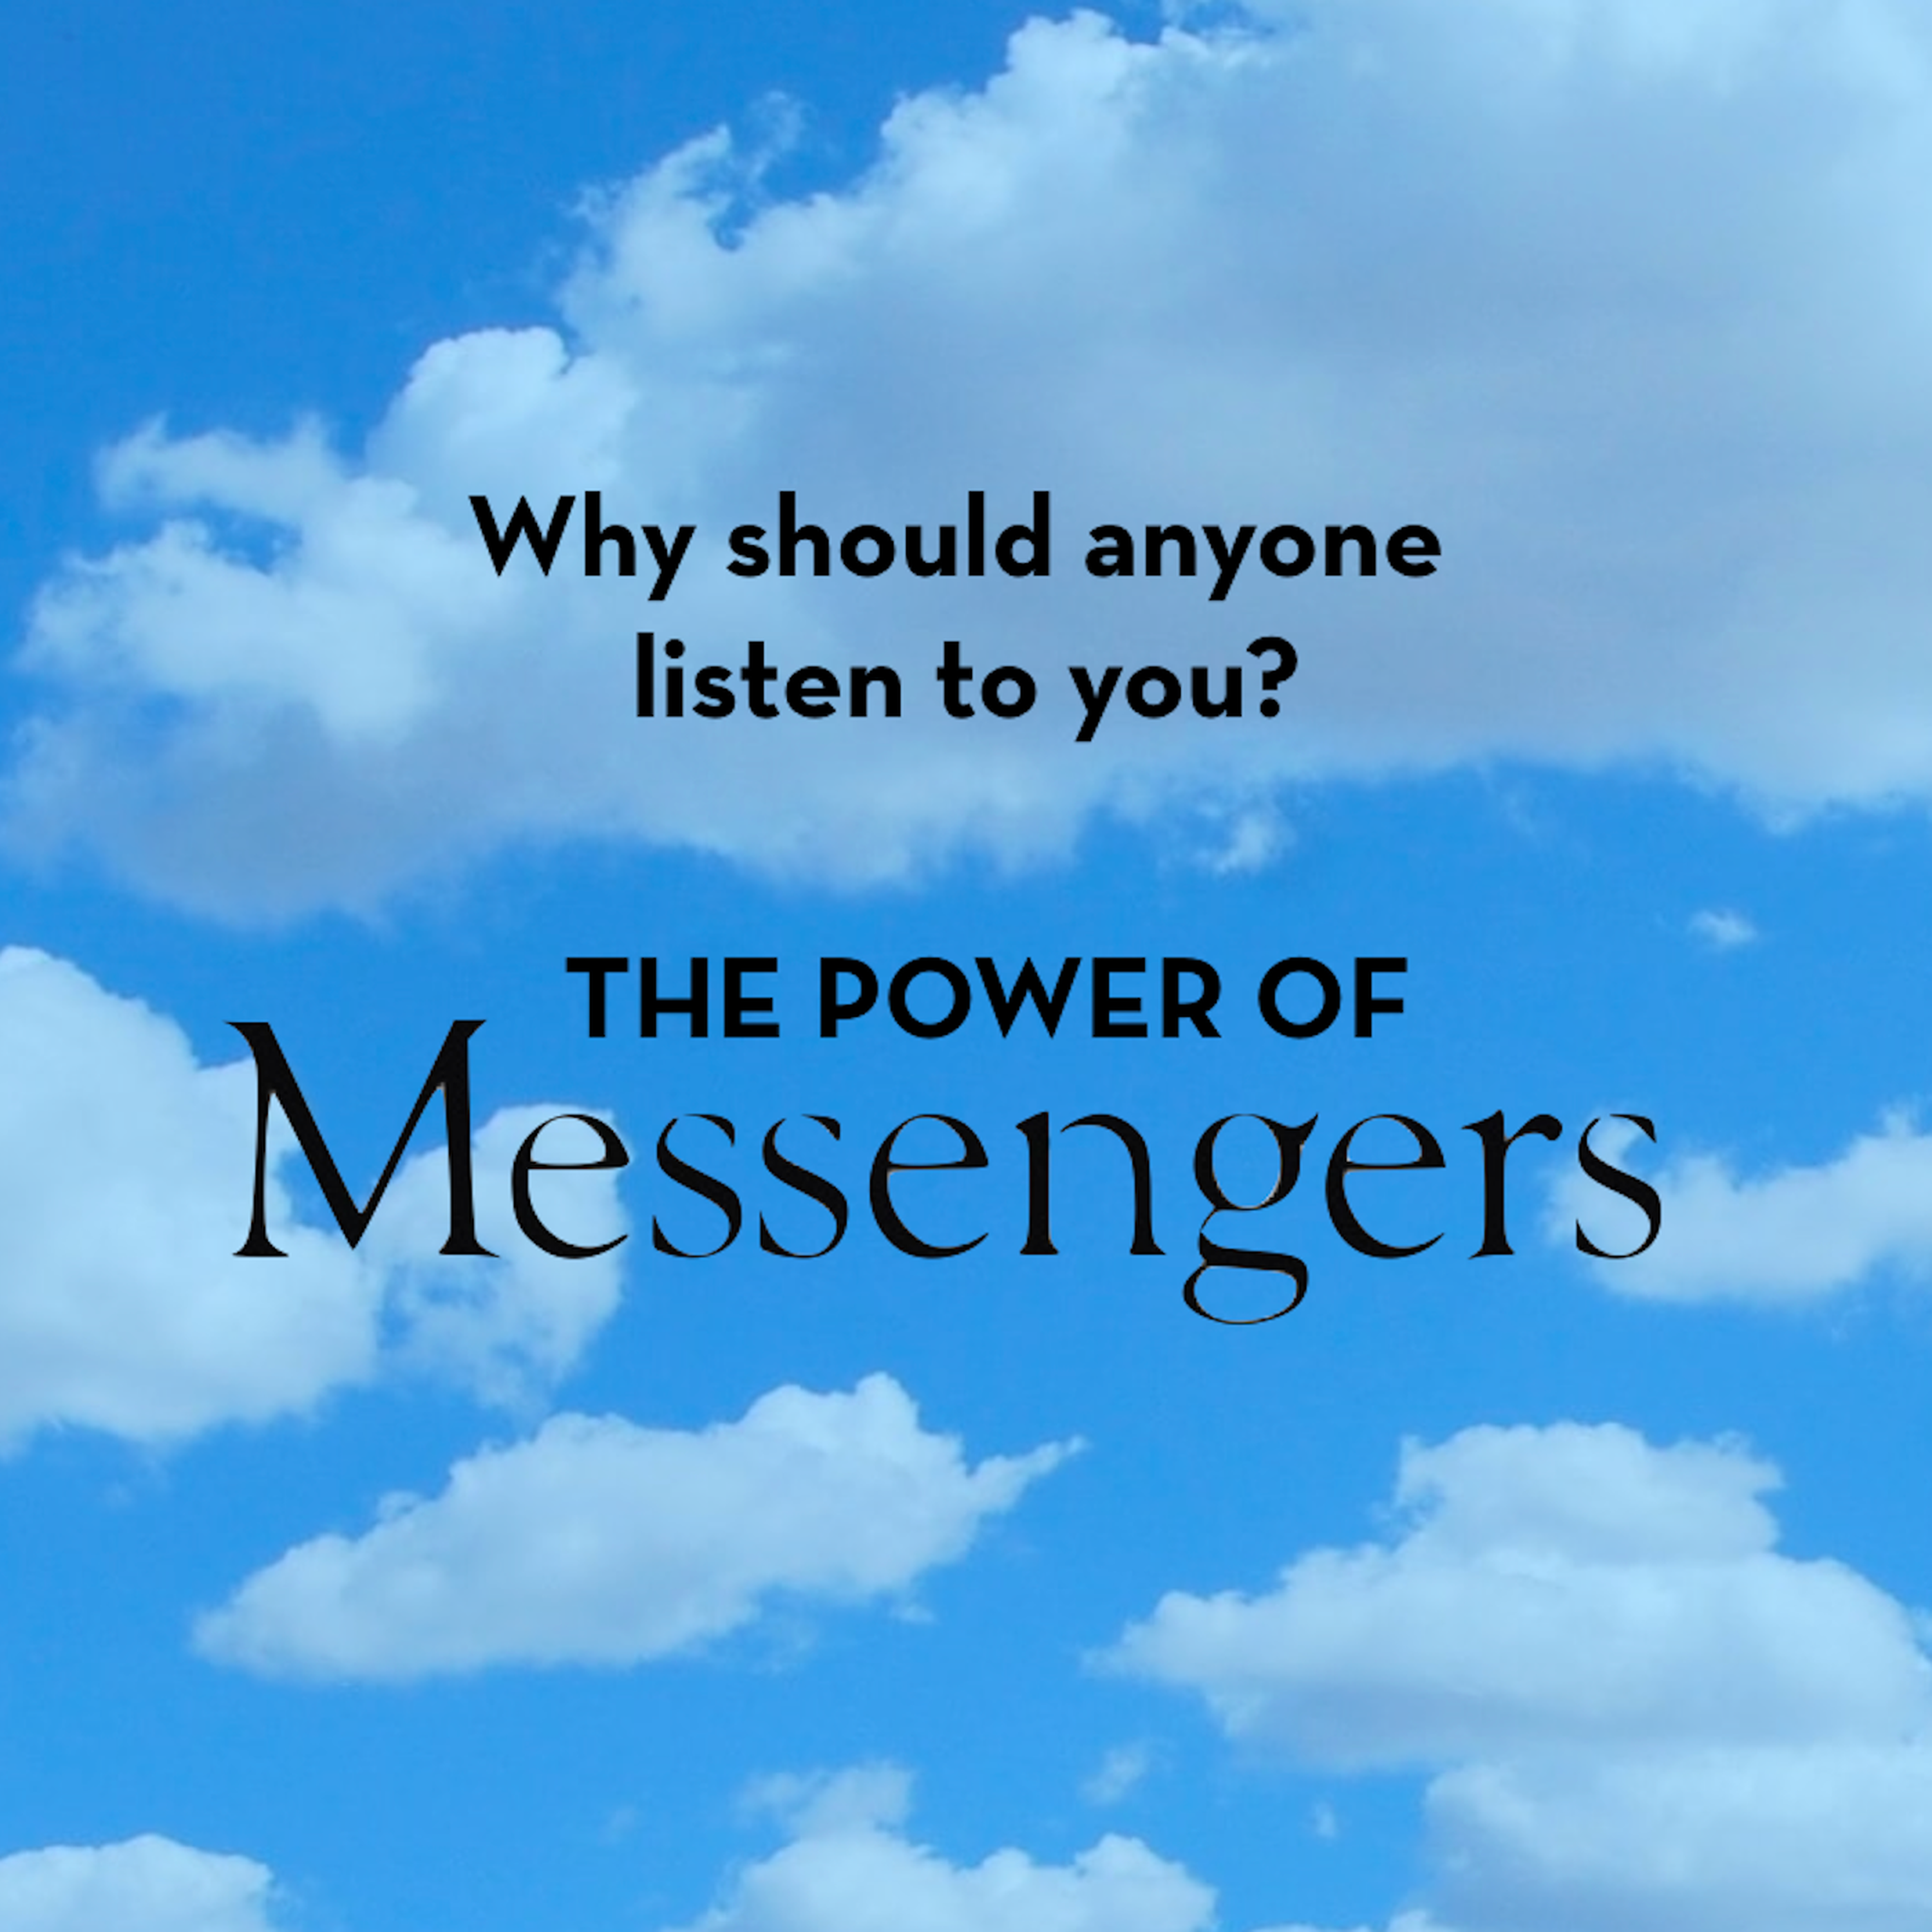 Why should anyone listen to you? The power of messengers